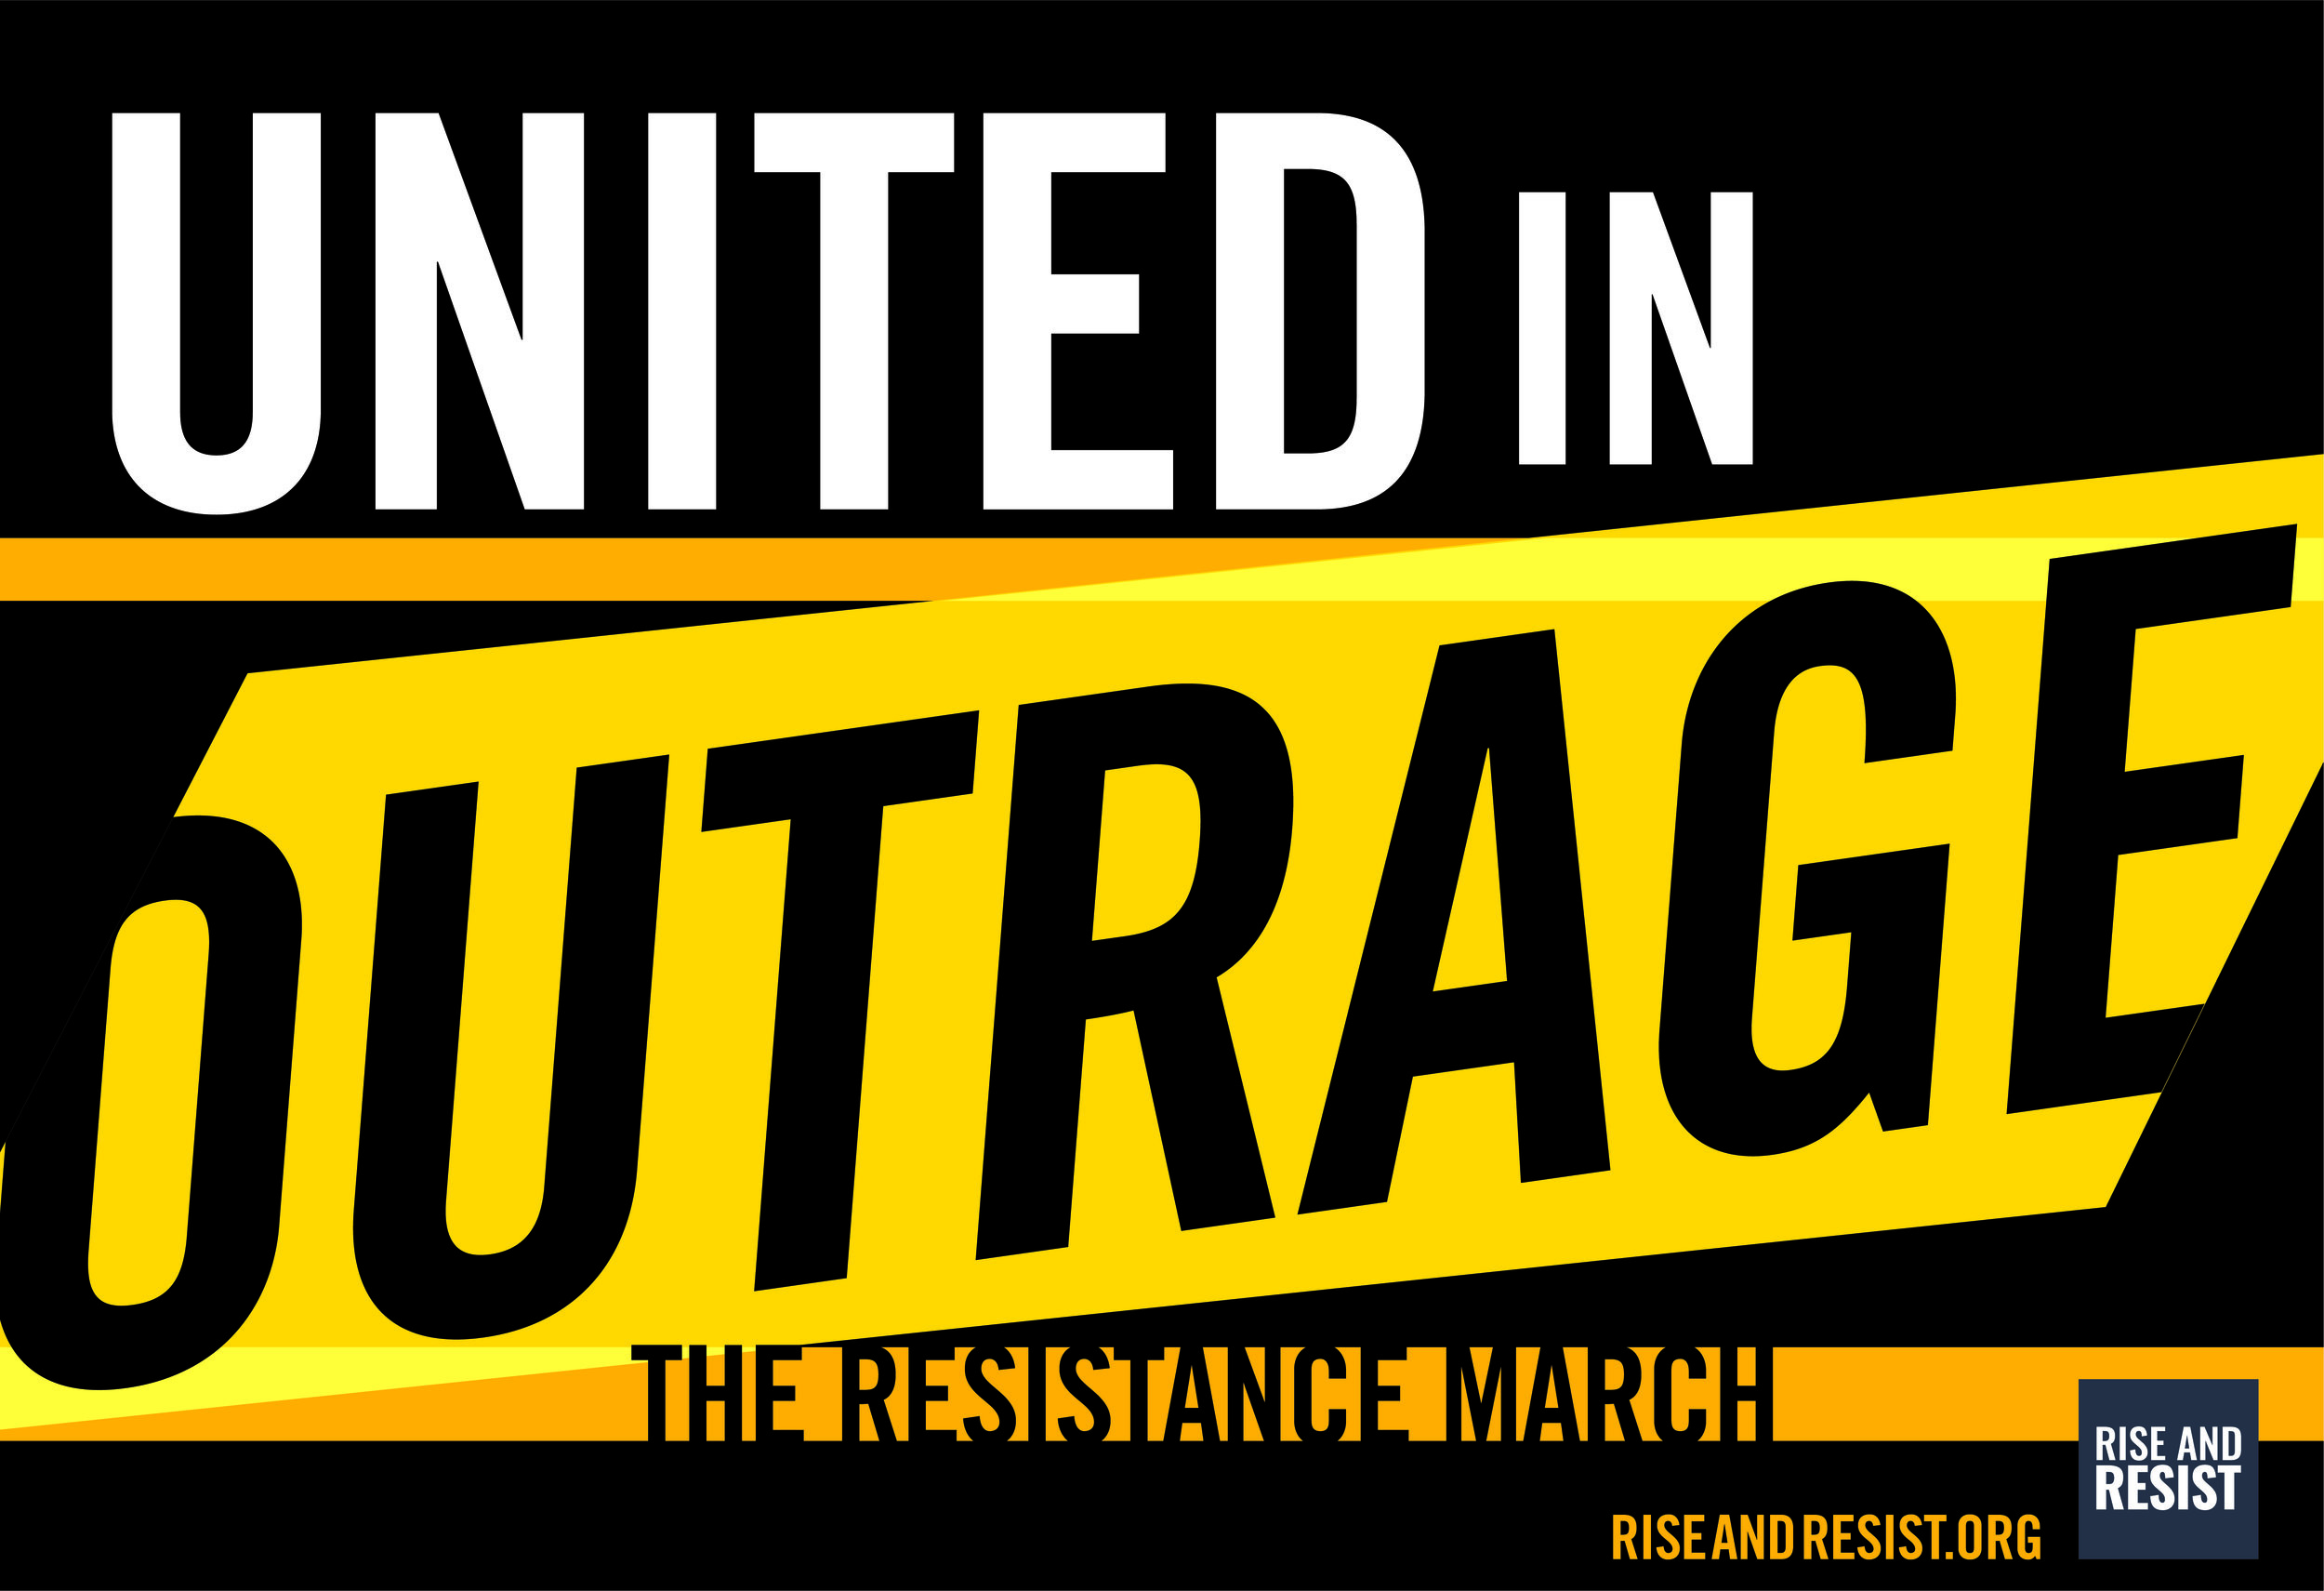 Outrage_banners_aug16_poster front.jpg